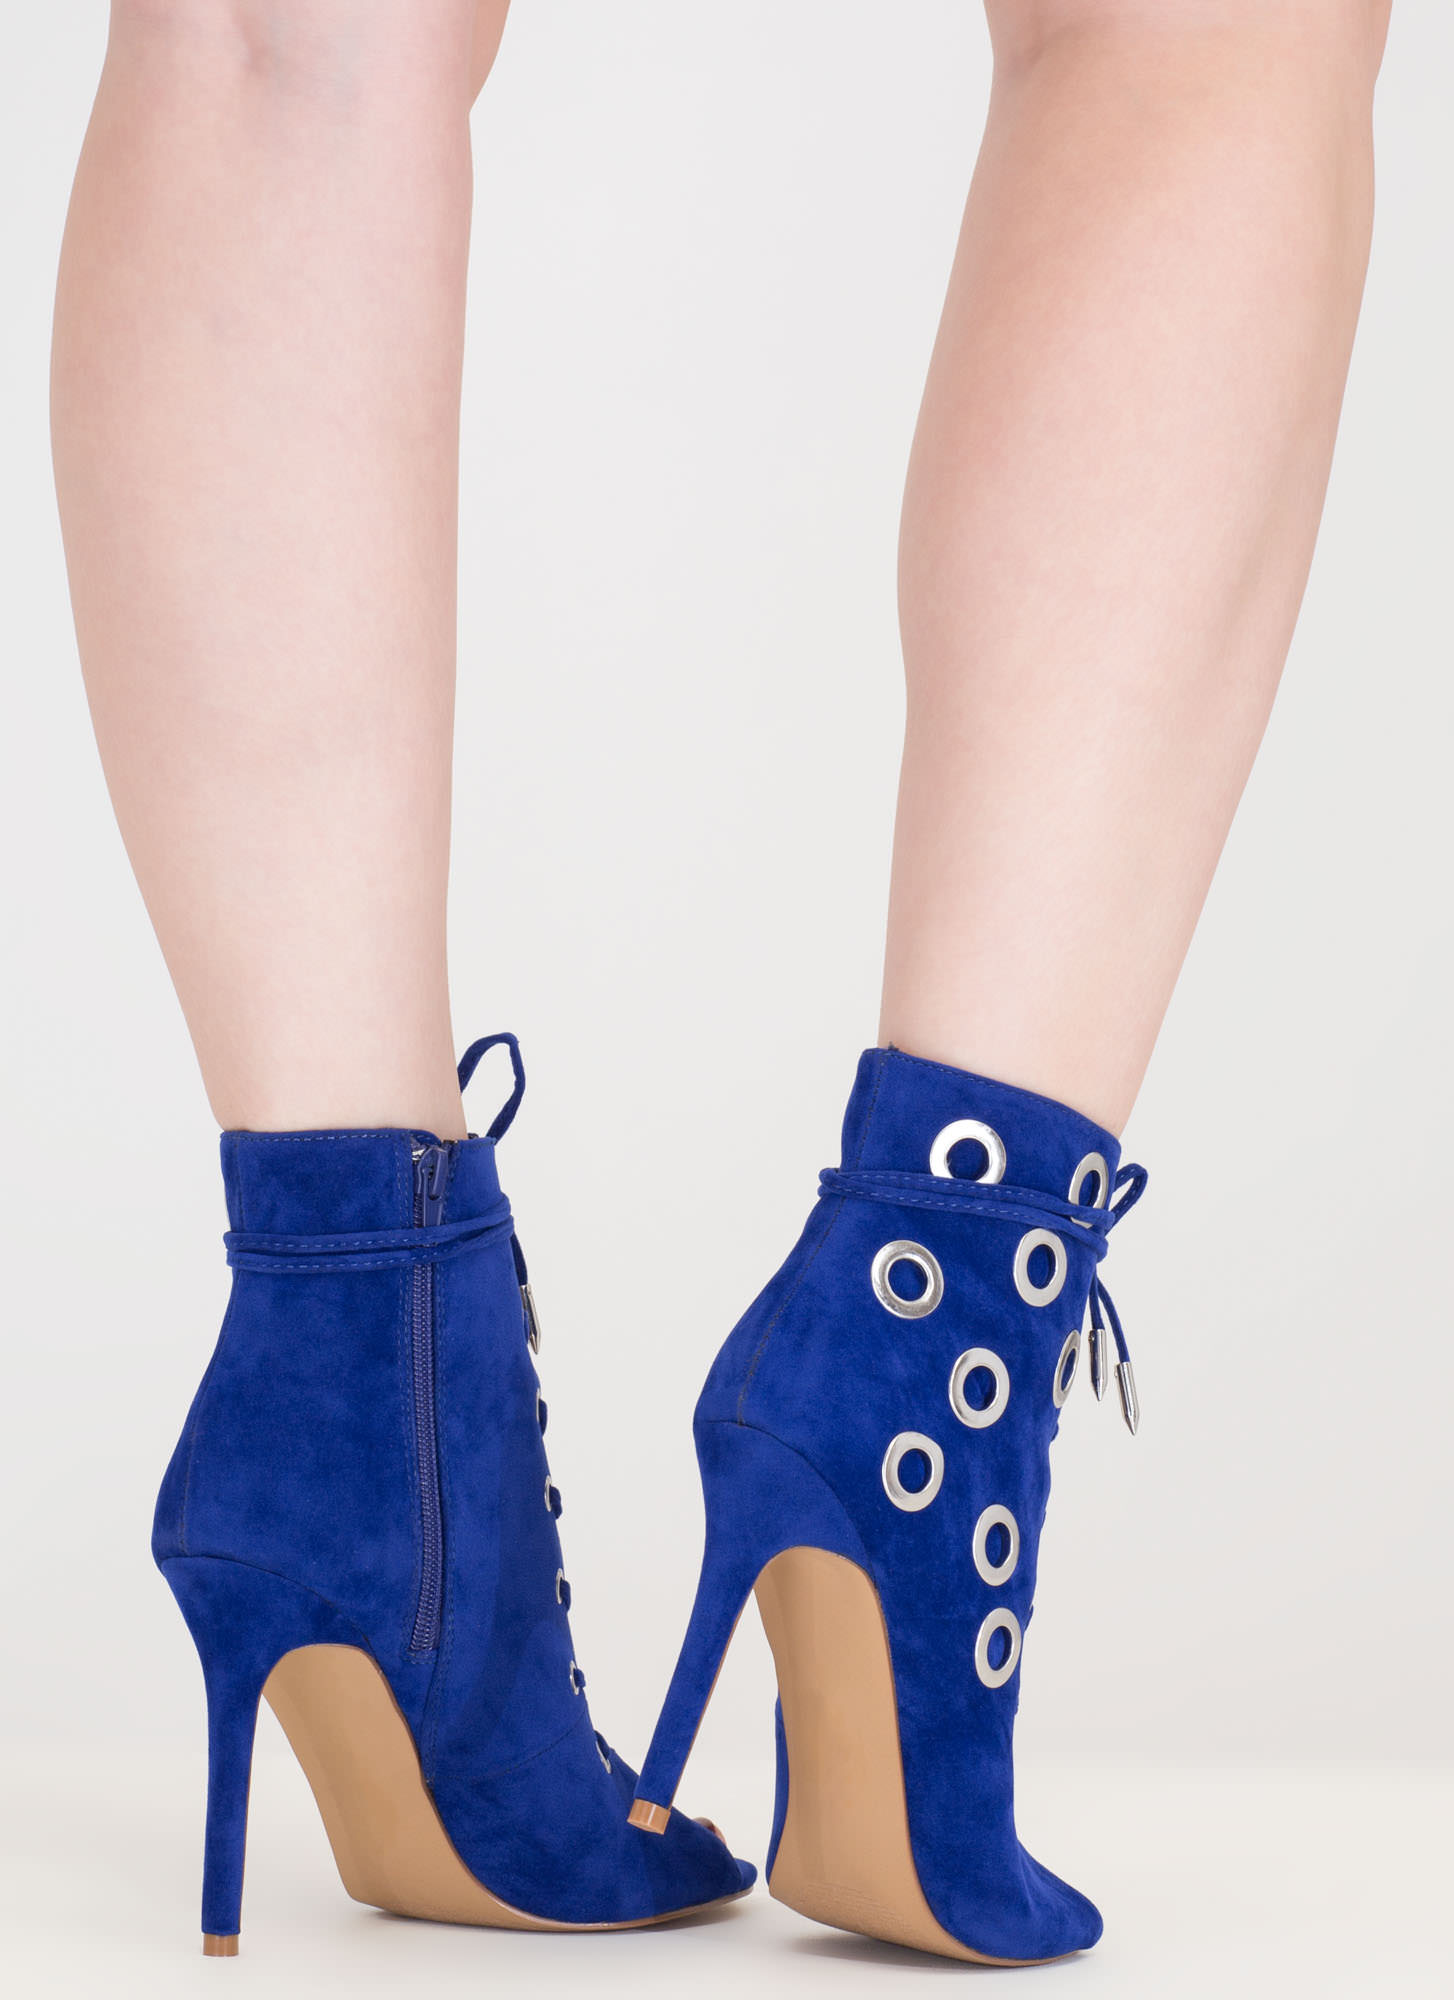 Hole Heart Embellished Lace-Up Booties BLUE (Final Sale)